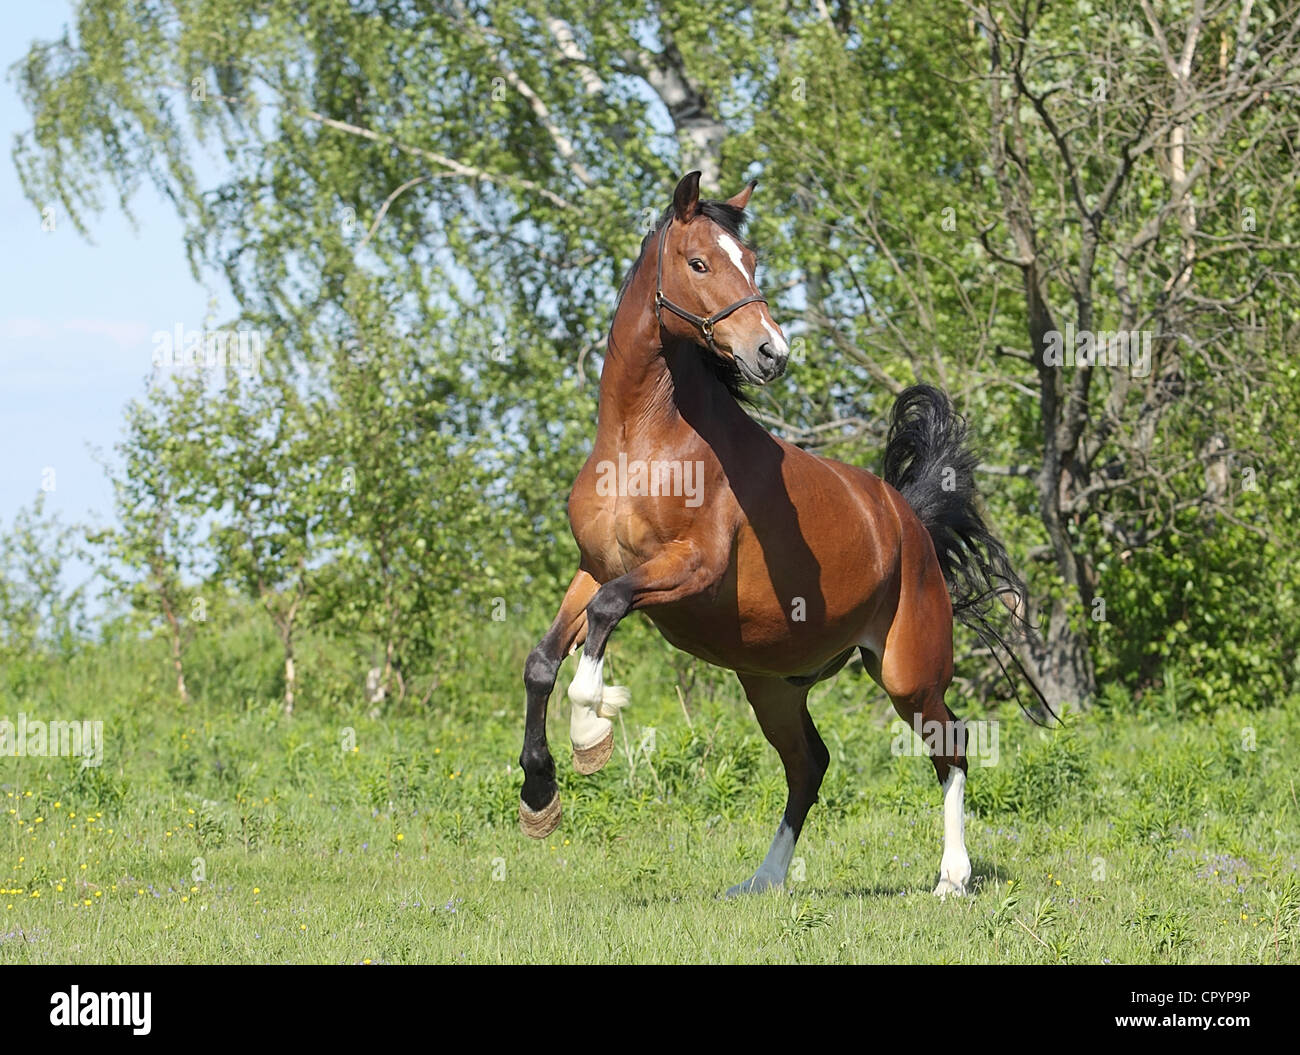 Dark bay horse dance in the meadow Stock Photo